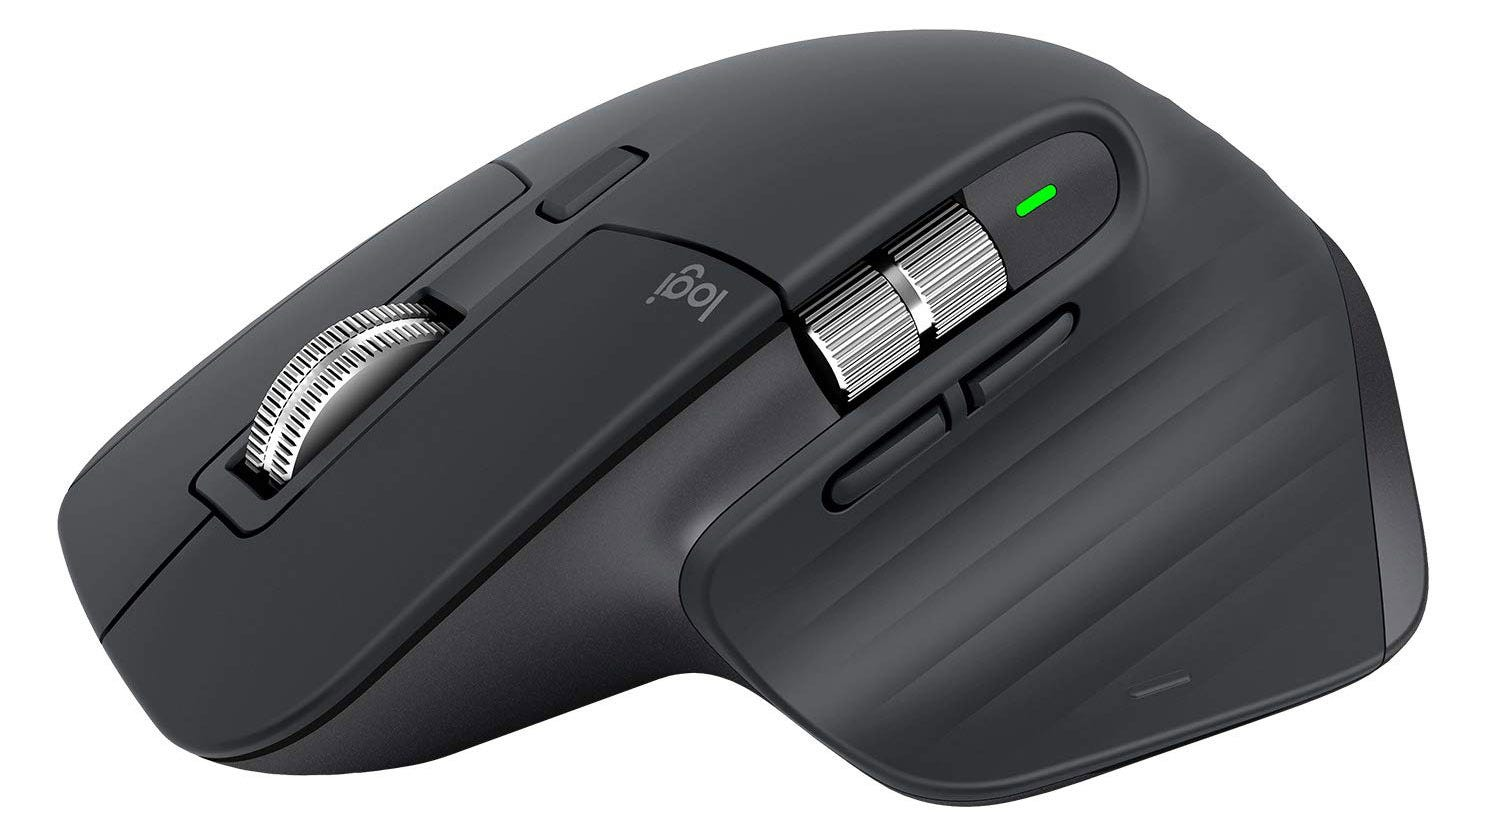 The Logitech MX Master 3 mouse, from the side.